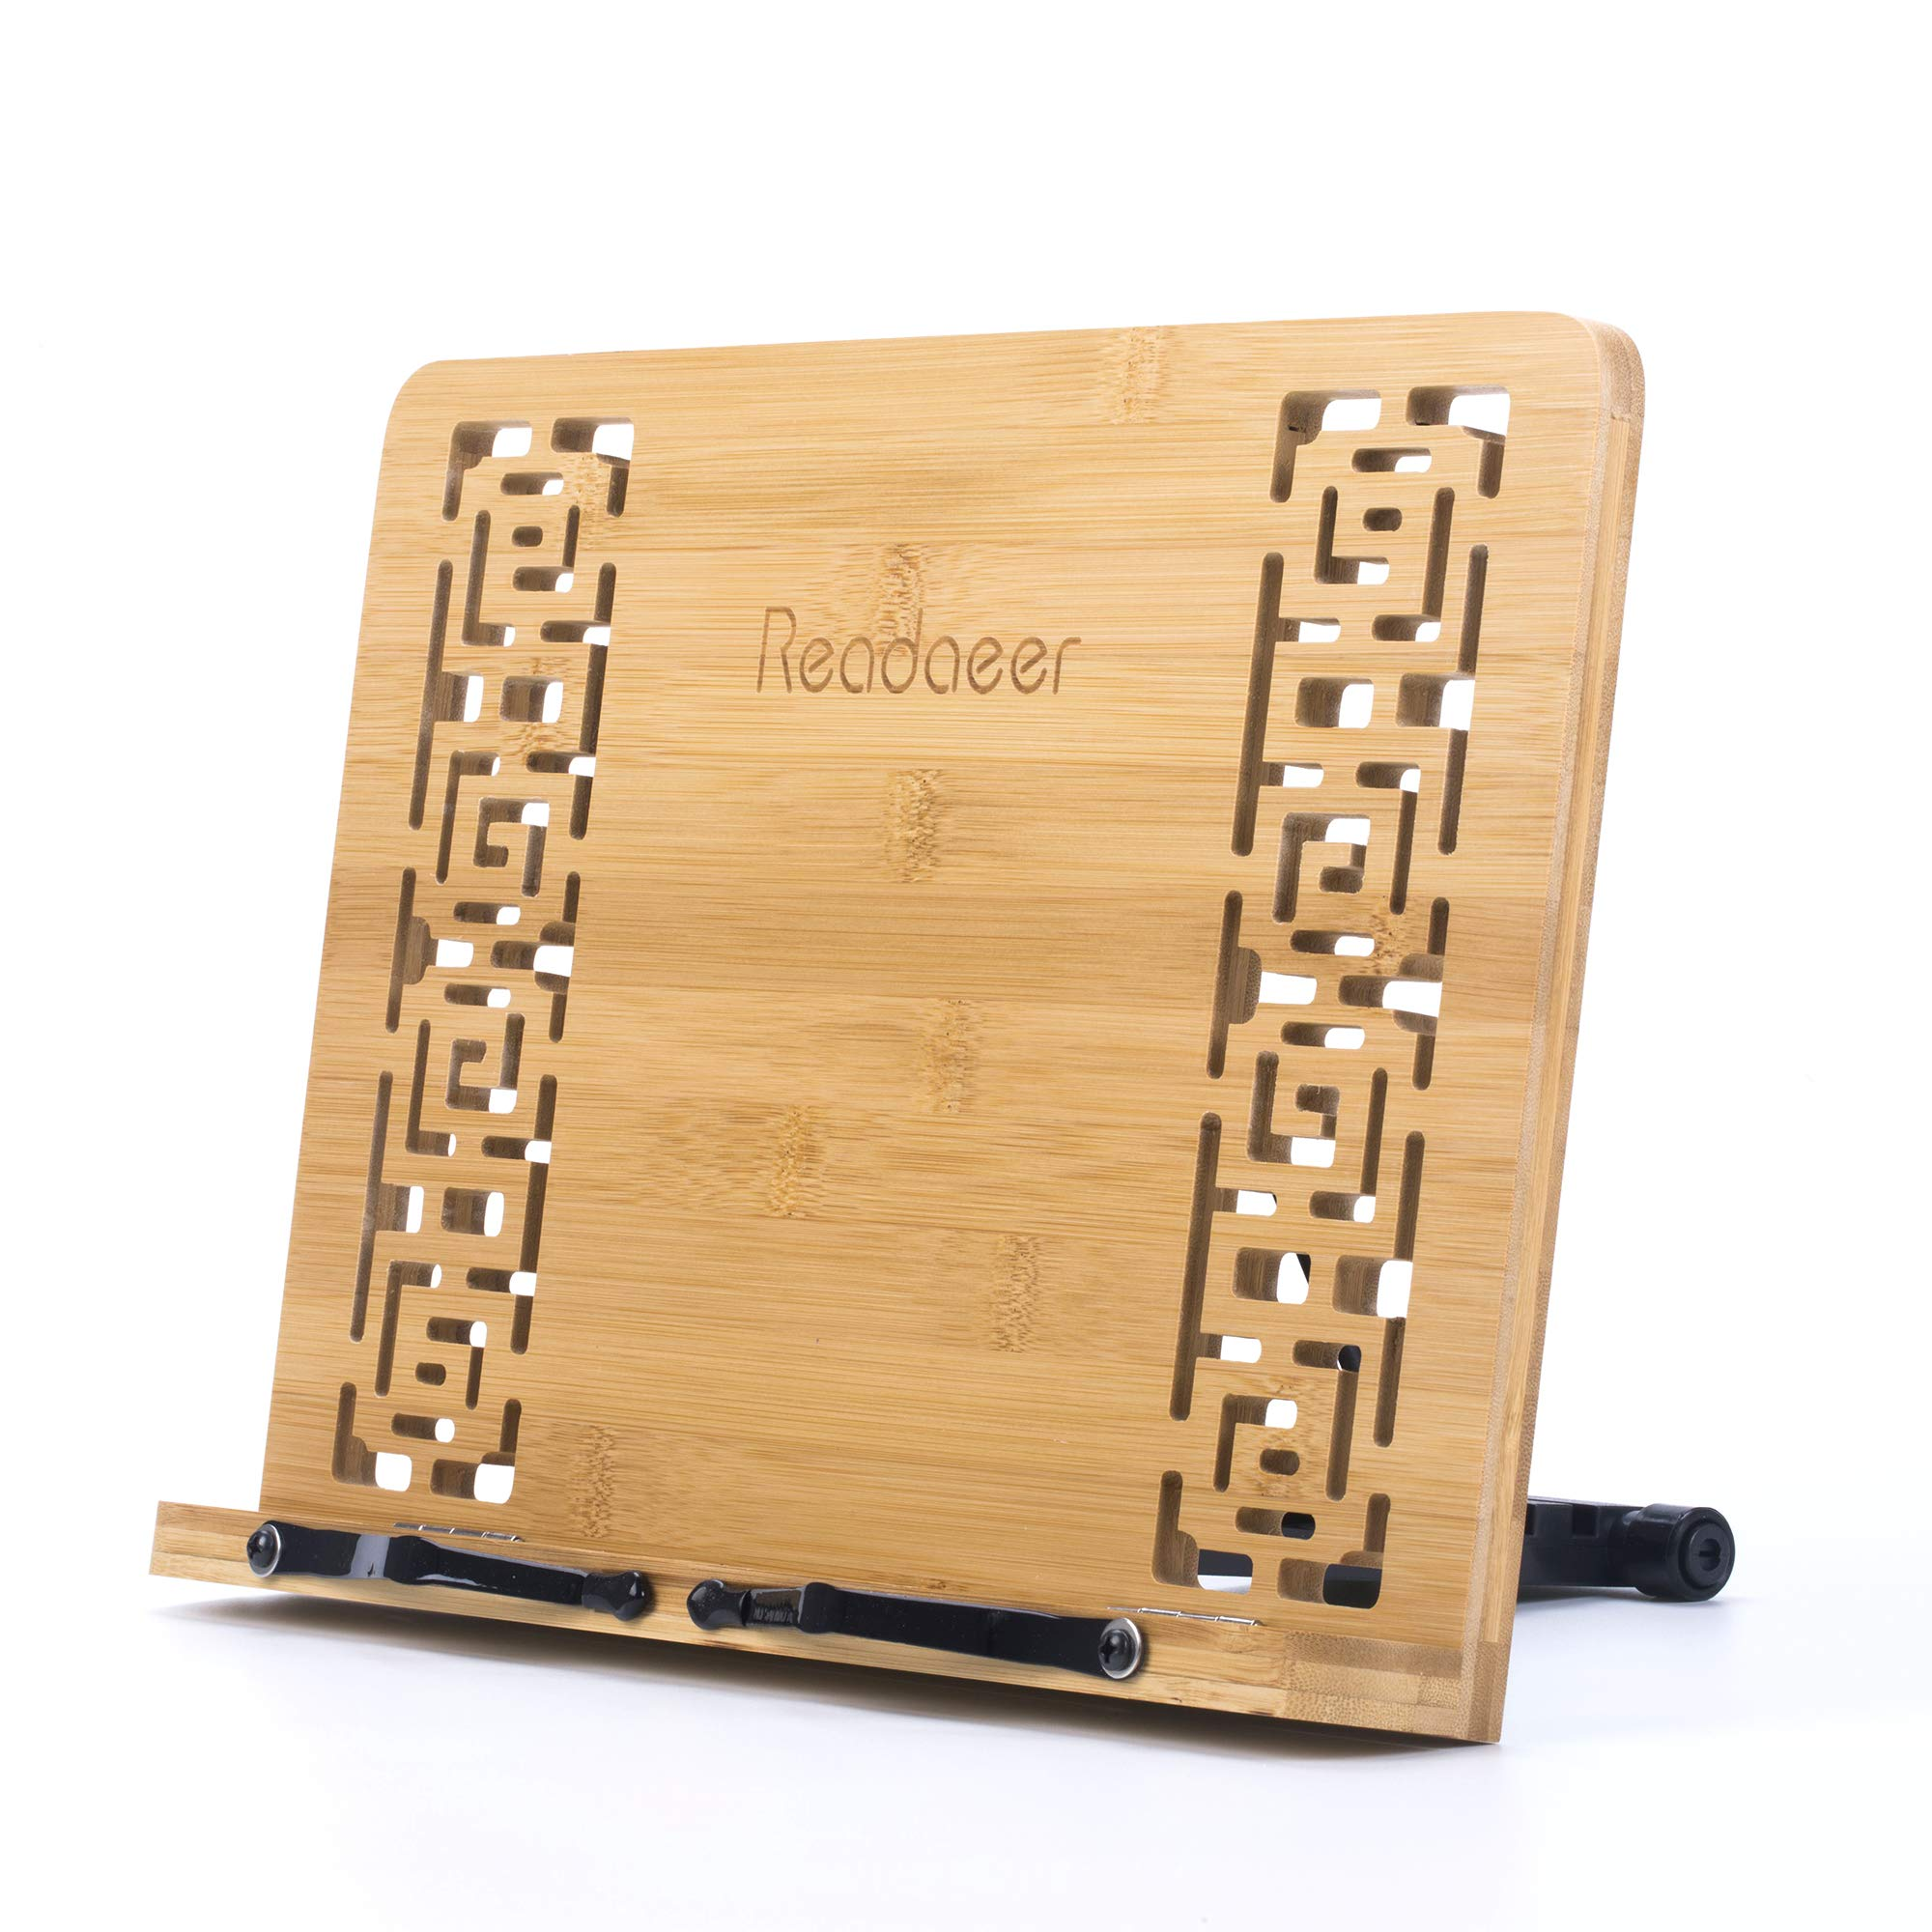 Reodoeer Bamboo Book Stand Reading Rest Cook Book Document Holder Foldable Pad Textbook Files Stand by MOODAEER